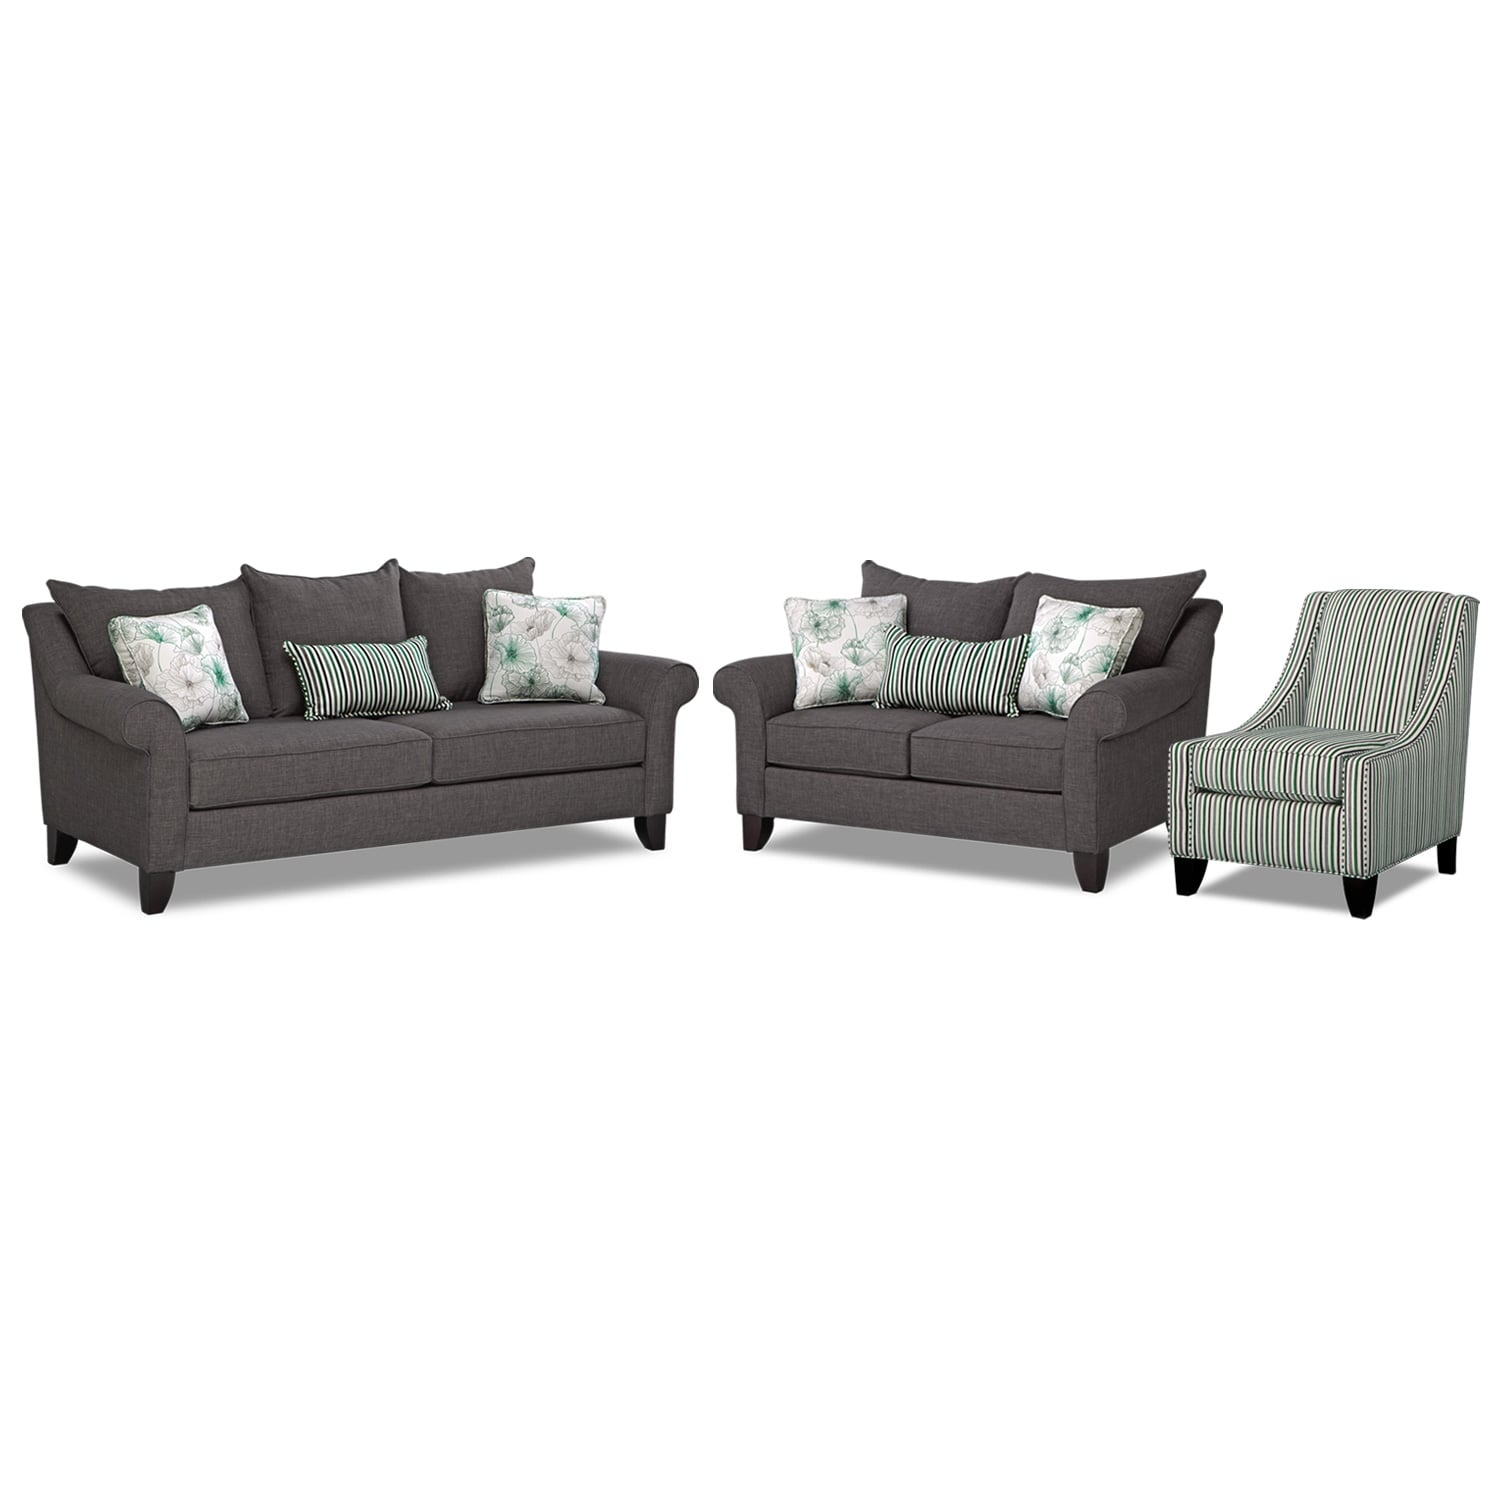 Living Room Furniture - Jasmine 3 Pc. Sleeper Living Room with Accent Chair and Memory Foam Mattress - Charcoal